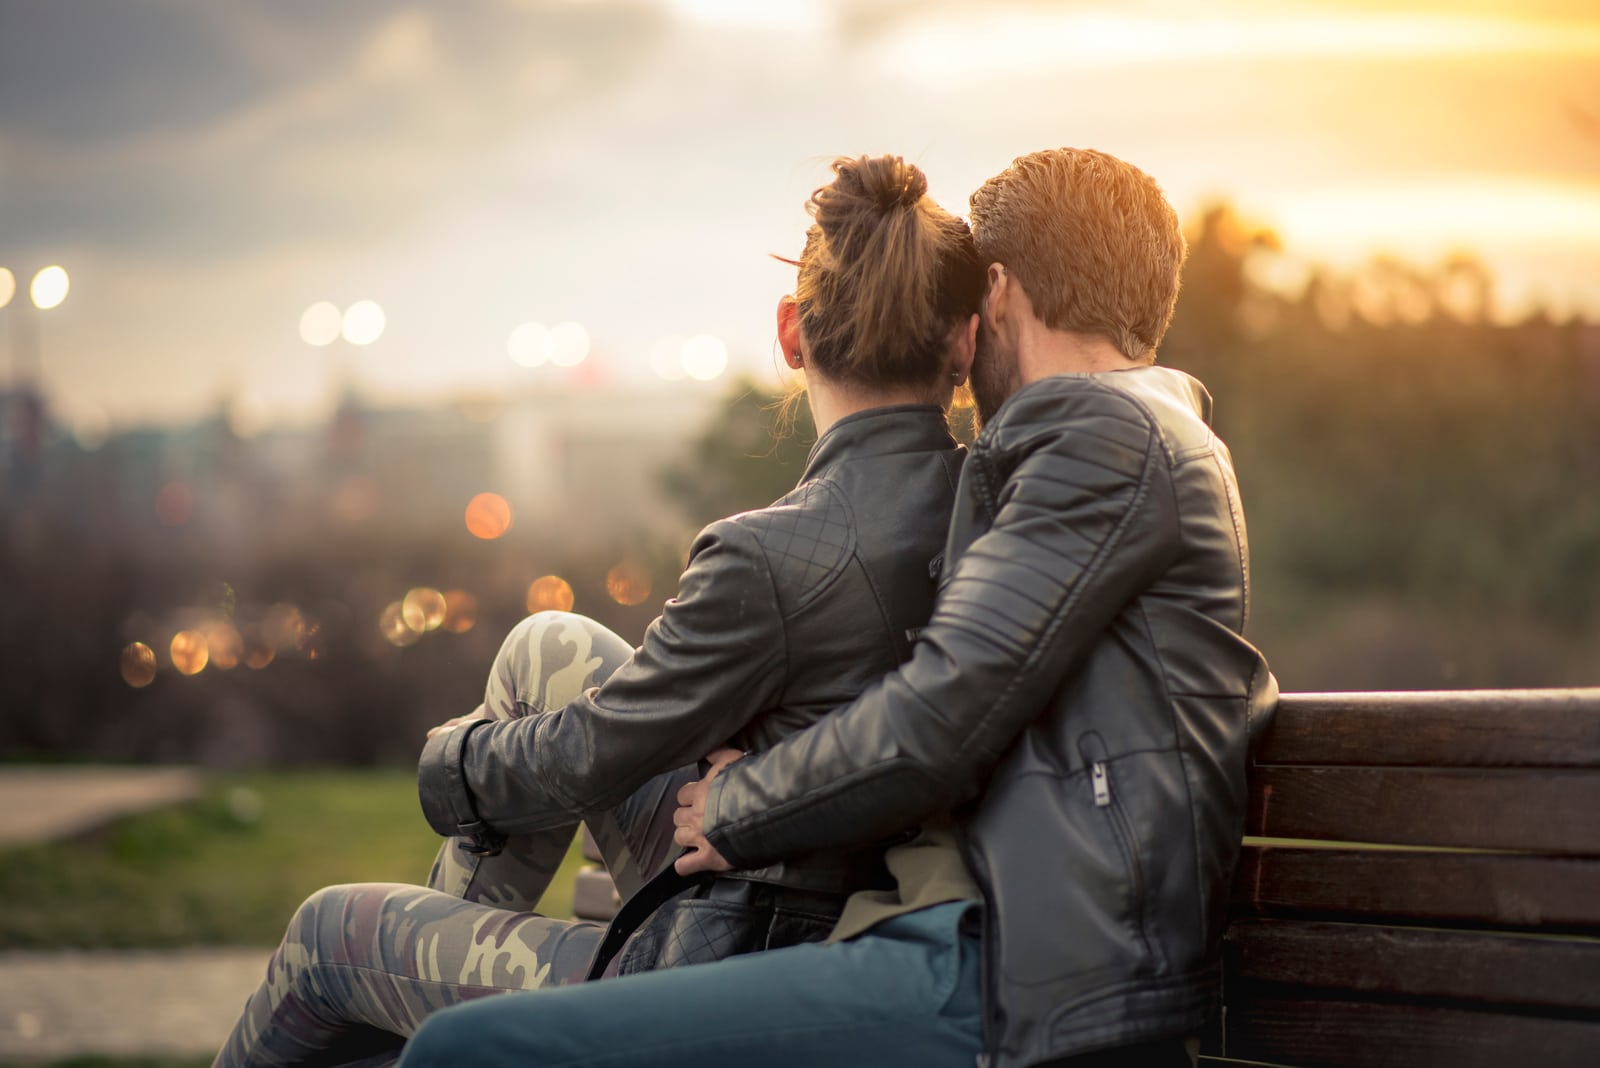 sweet couple embraced on a bench in park